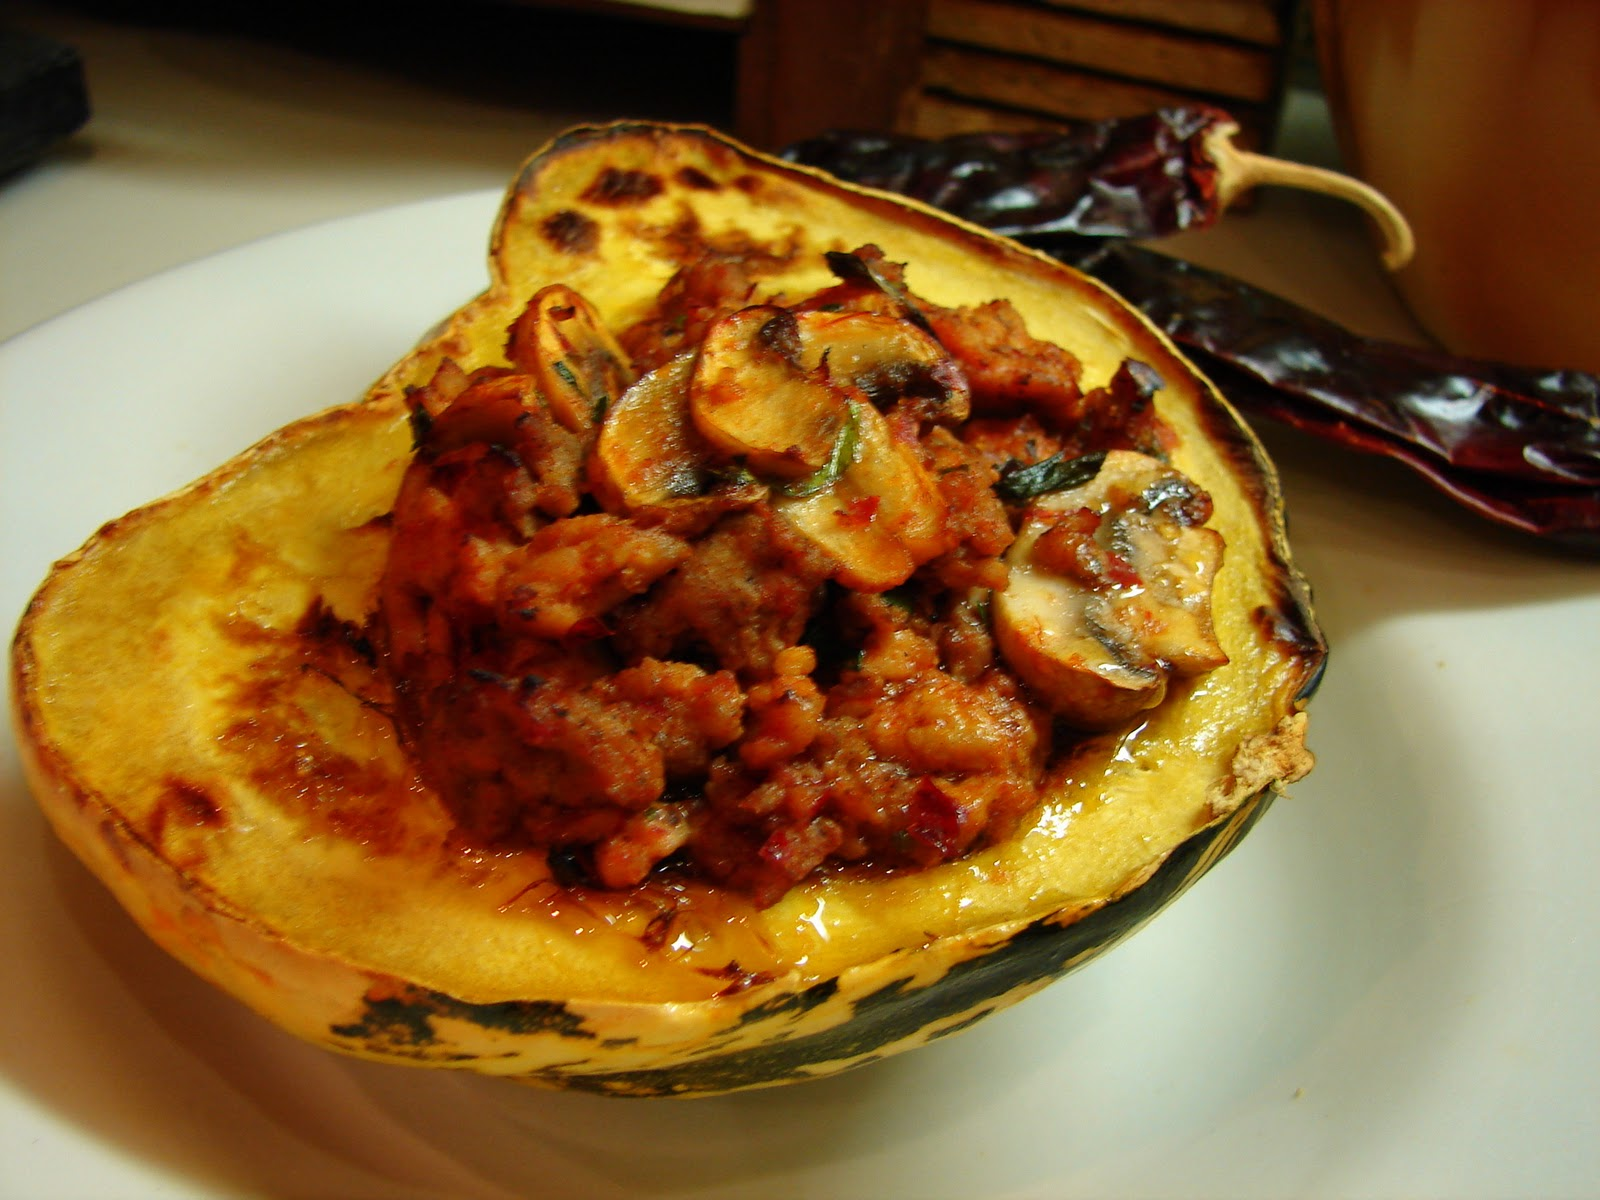 squash are a colorful winter squash sometimes labeled acorn squash